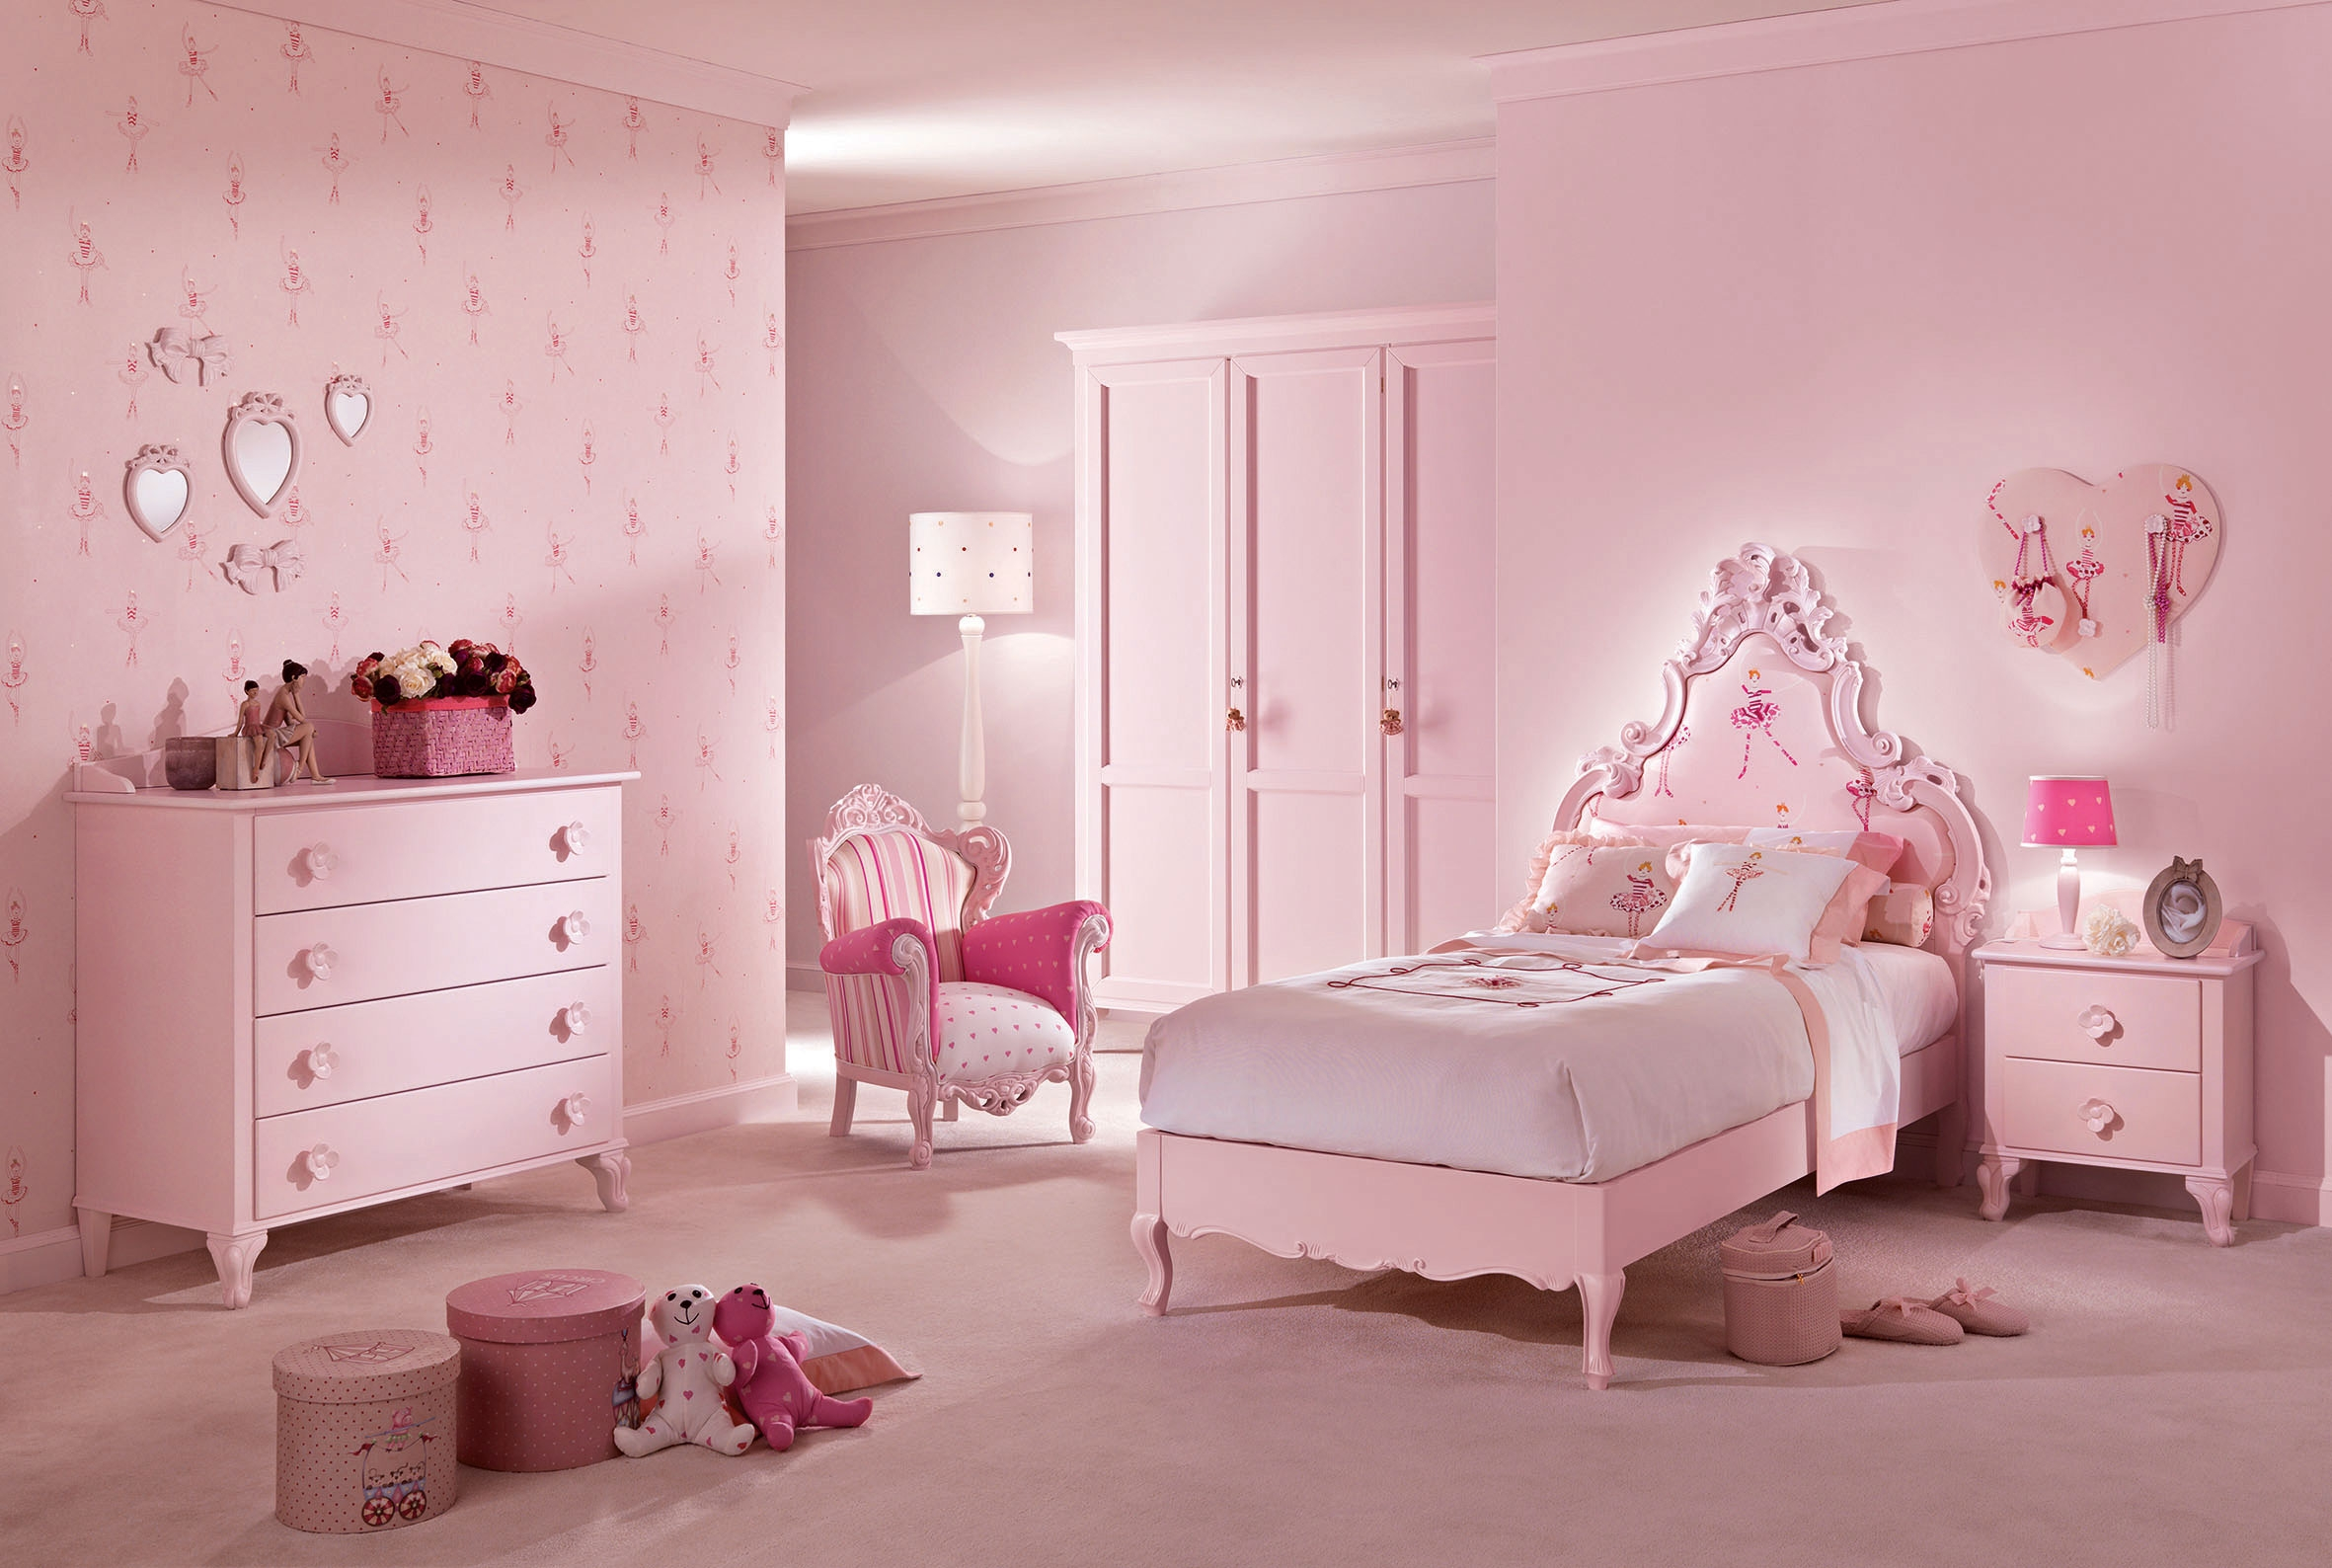 Best model lit de chambre pictures awesome interior home for Modele de chambre a coucher adulte